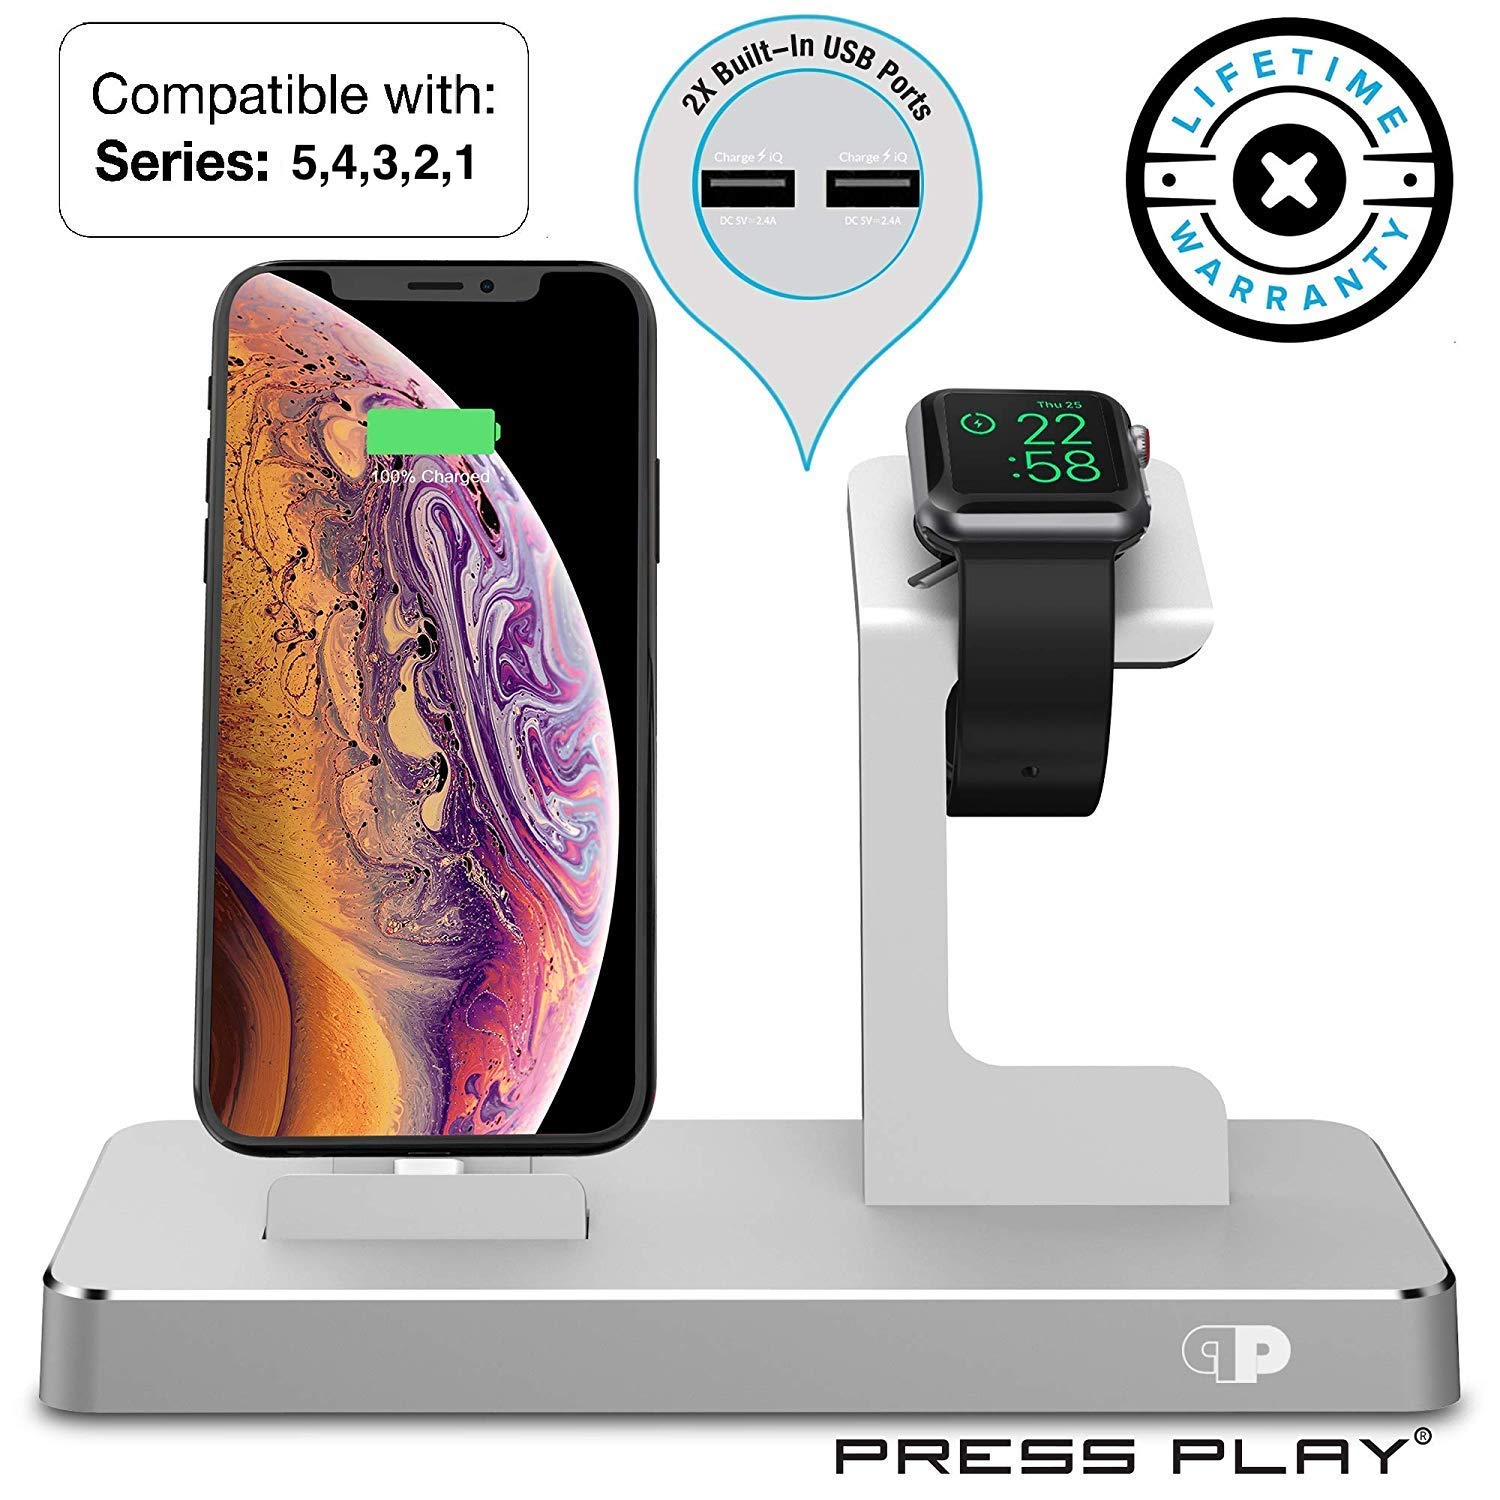 ONE Dock (APPLE CERTIFIED) Power Station Dock, Stand & Built-In Lightning Charger for Apple Watch Smart Watch (Series 5,4,3,2,1, Nike+), iPhone, iPad, and iPod by Press Play